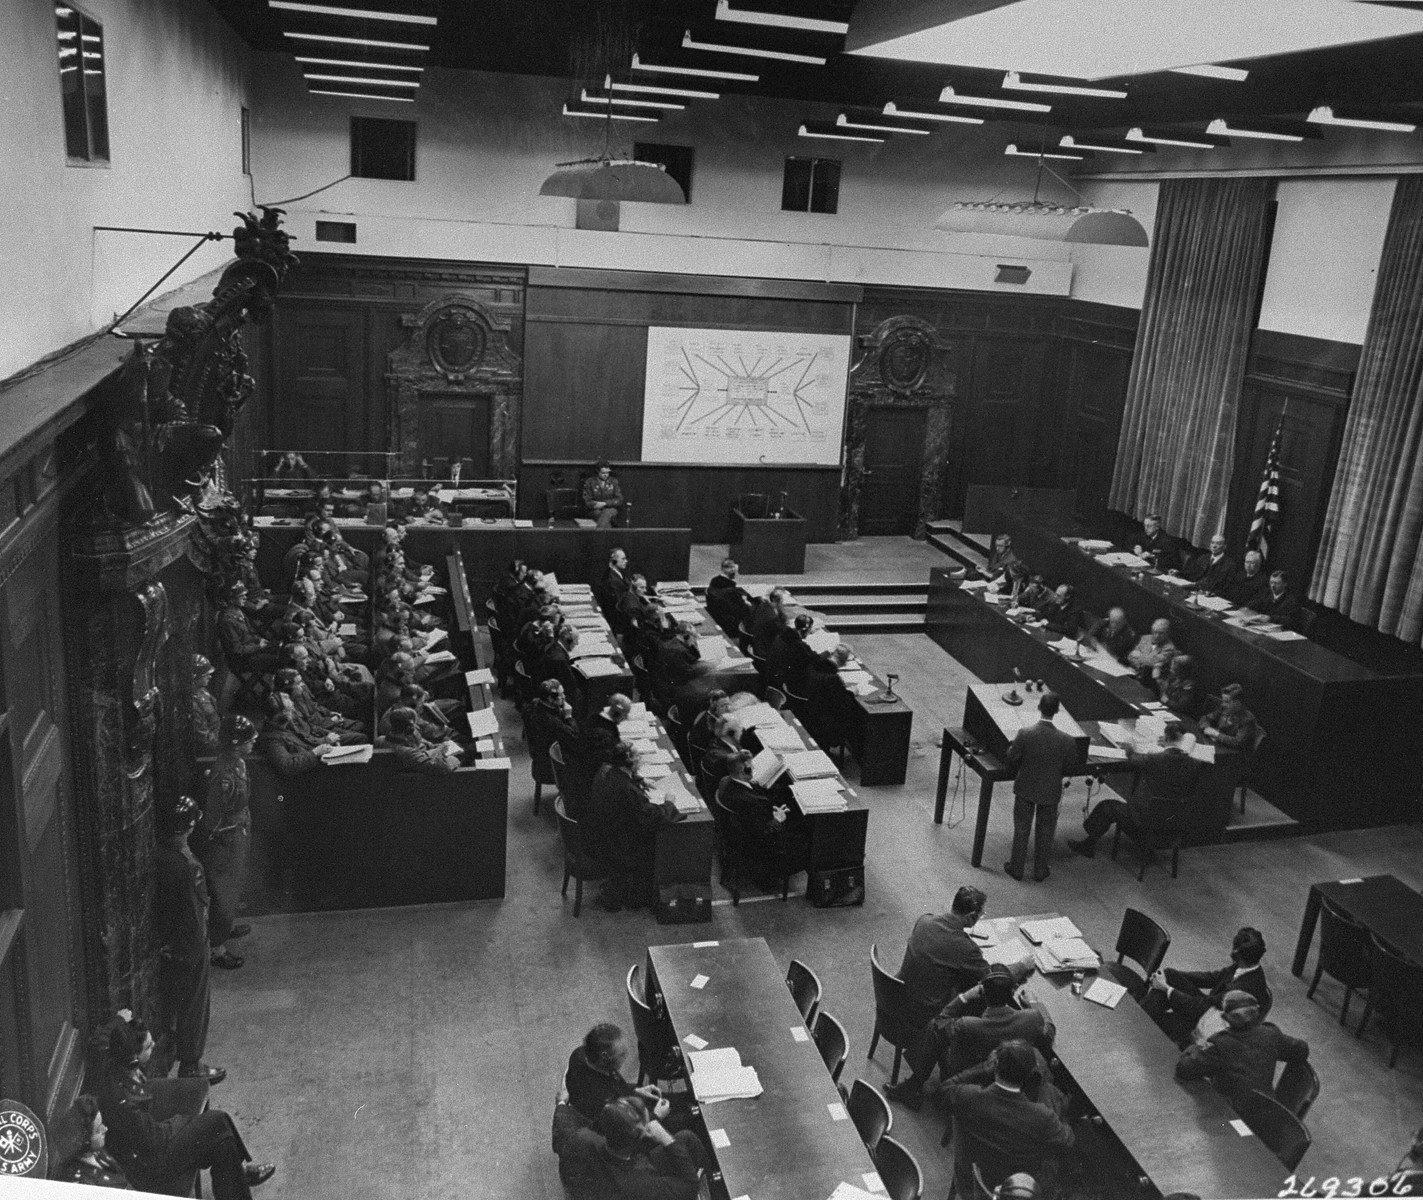 The defendants (left), their lawyers (center), the Military Tribunal I (right), and the prosecution (bottom), listen to the proceedings at a session of the Medical Case (Doctors') Trial in Nuremberg.